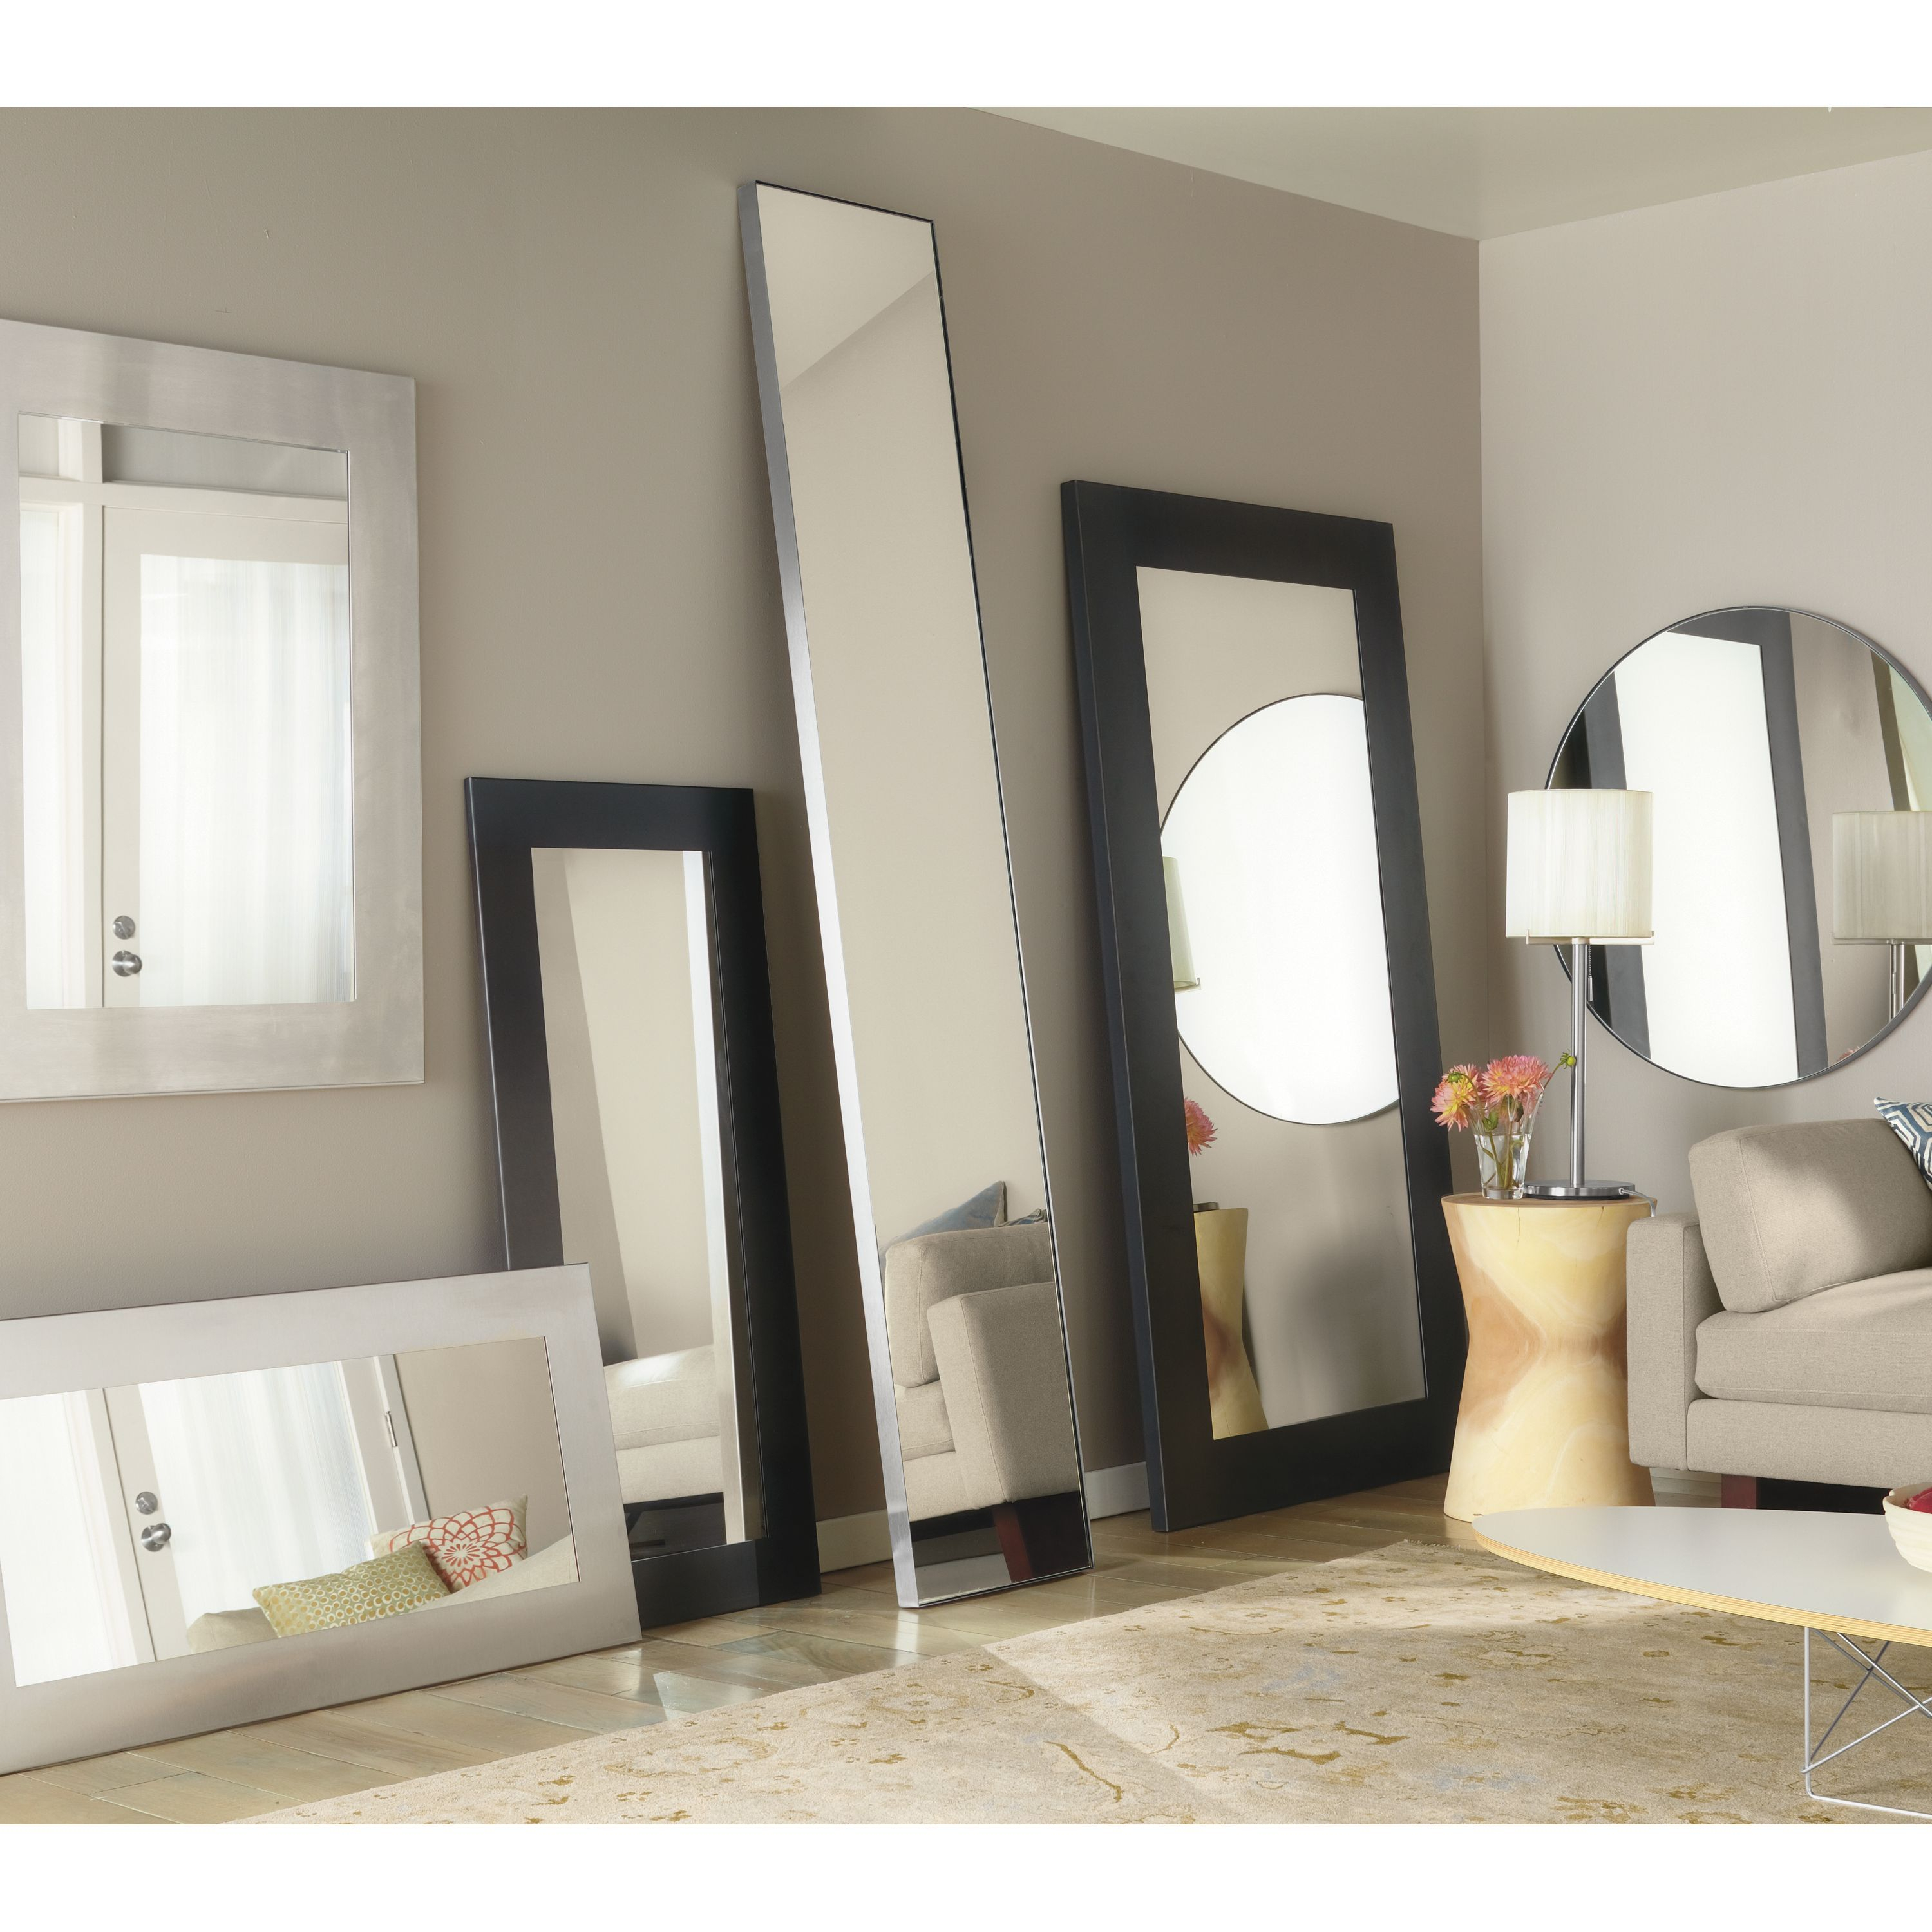 Manhattan Leaning Mirrors In Natural Steel | Products In Pertaining To Leaning Mirrors (View 25 of 30)